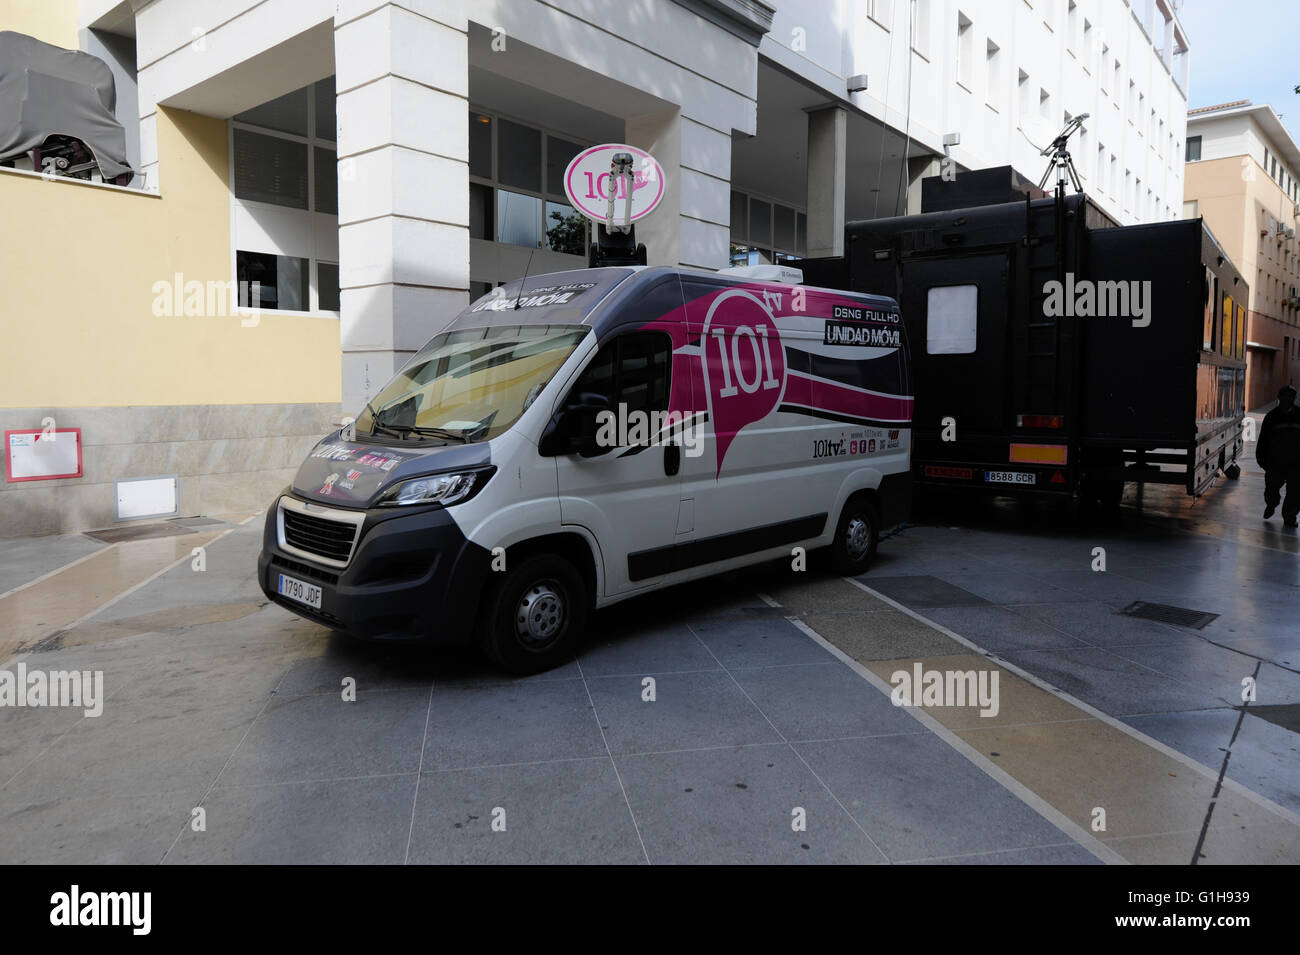 Broadcasting van in Malaga Spain - Stock Image